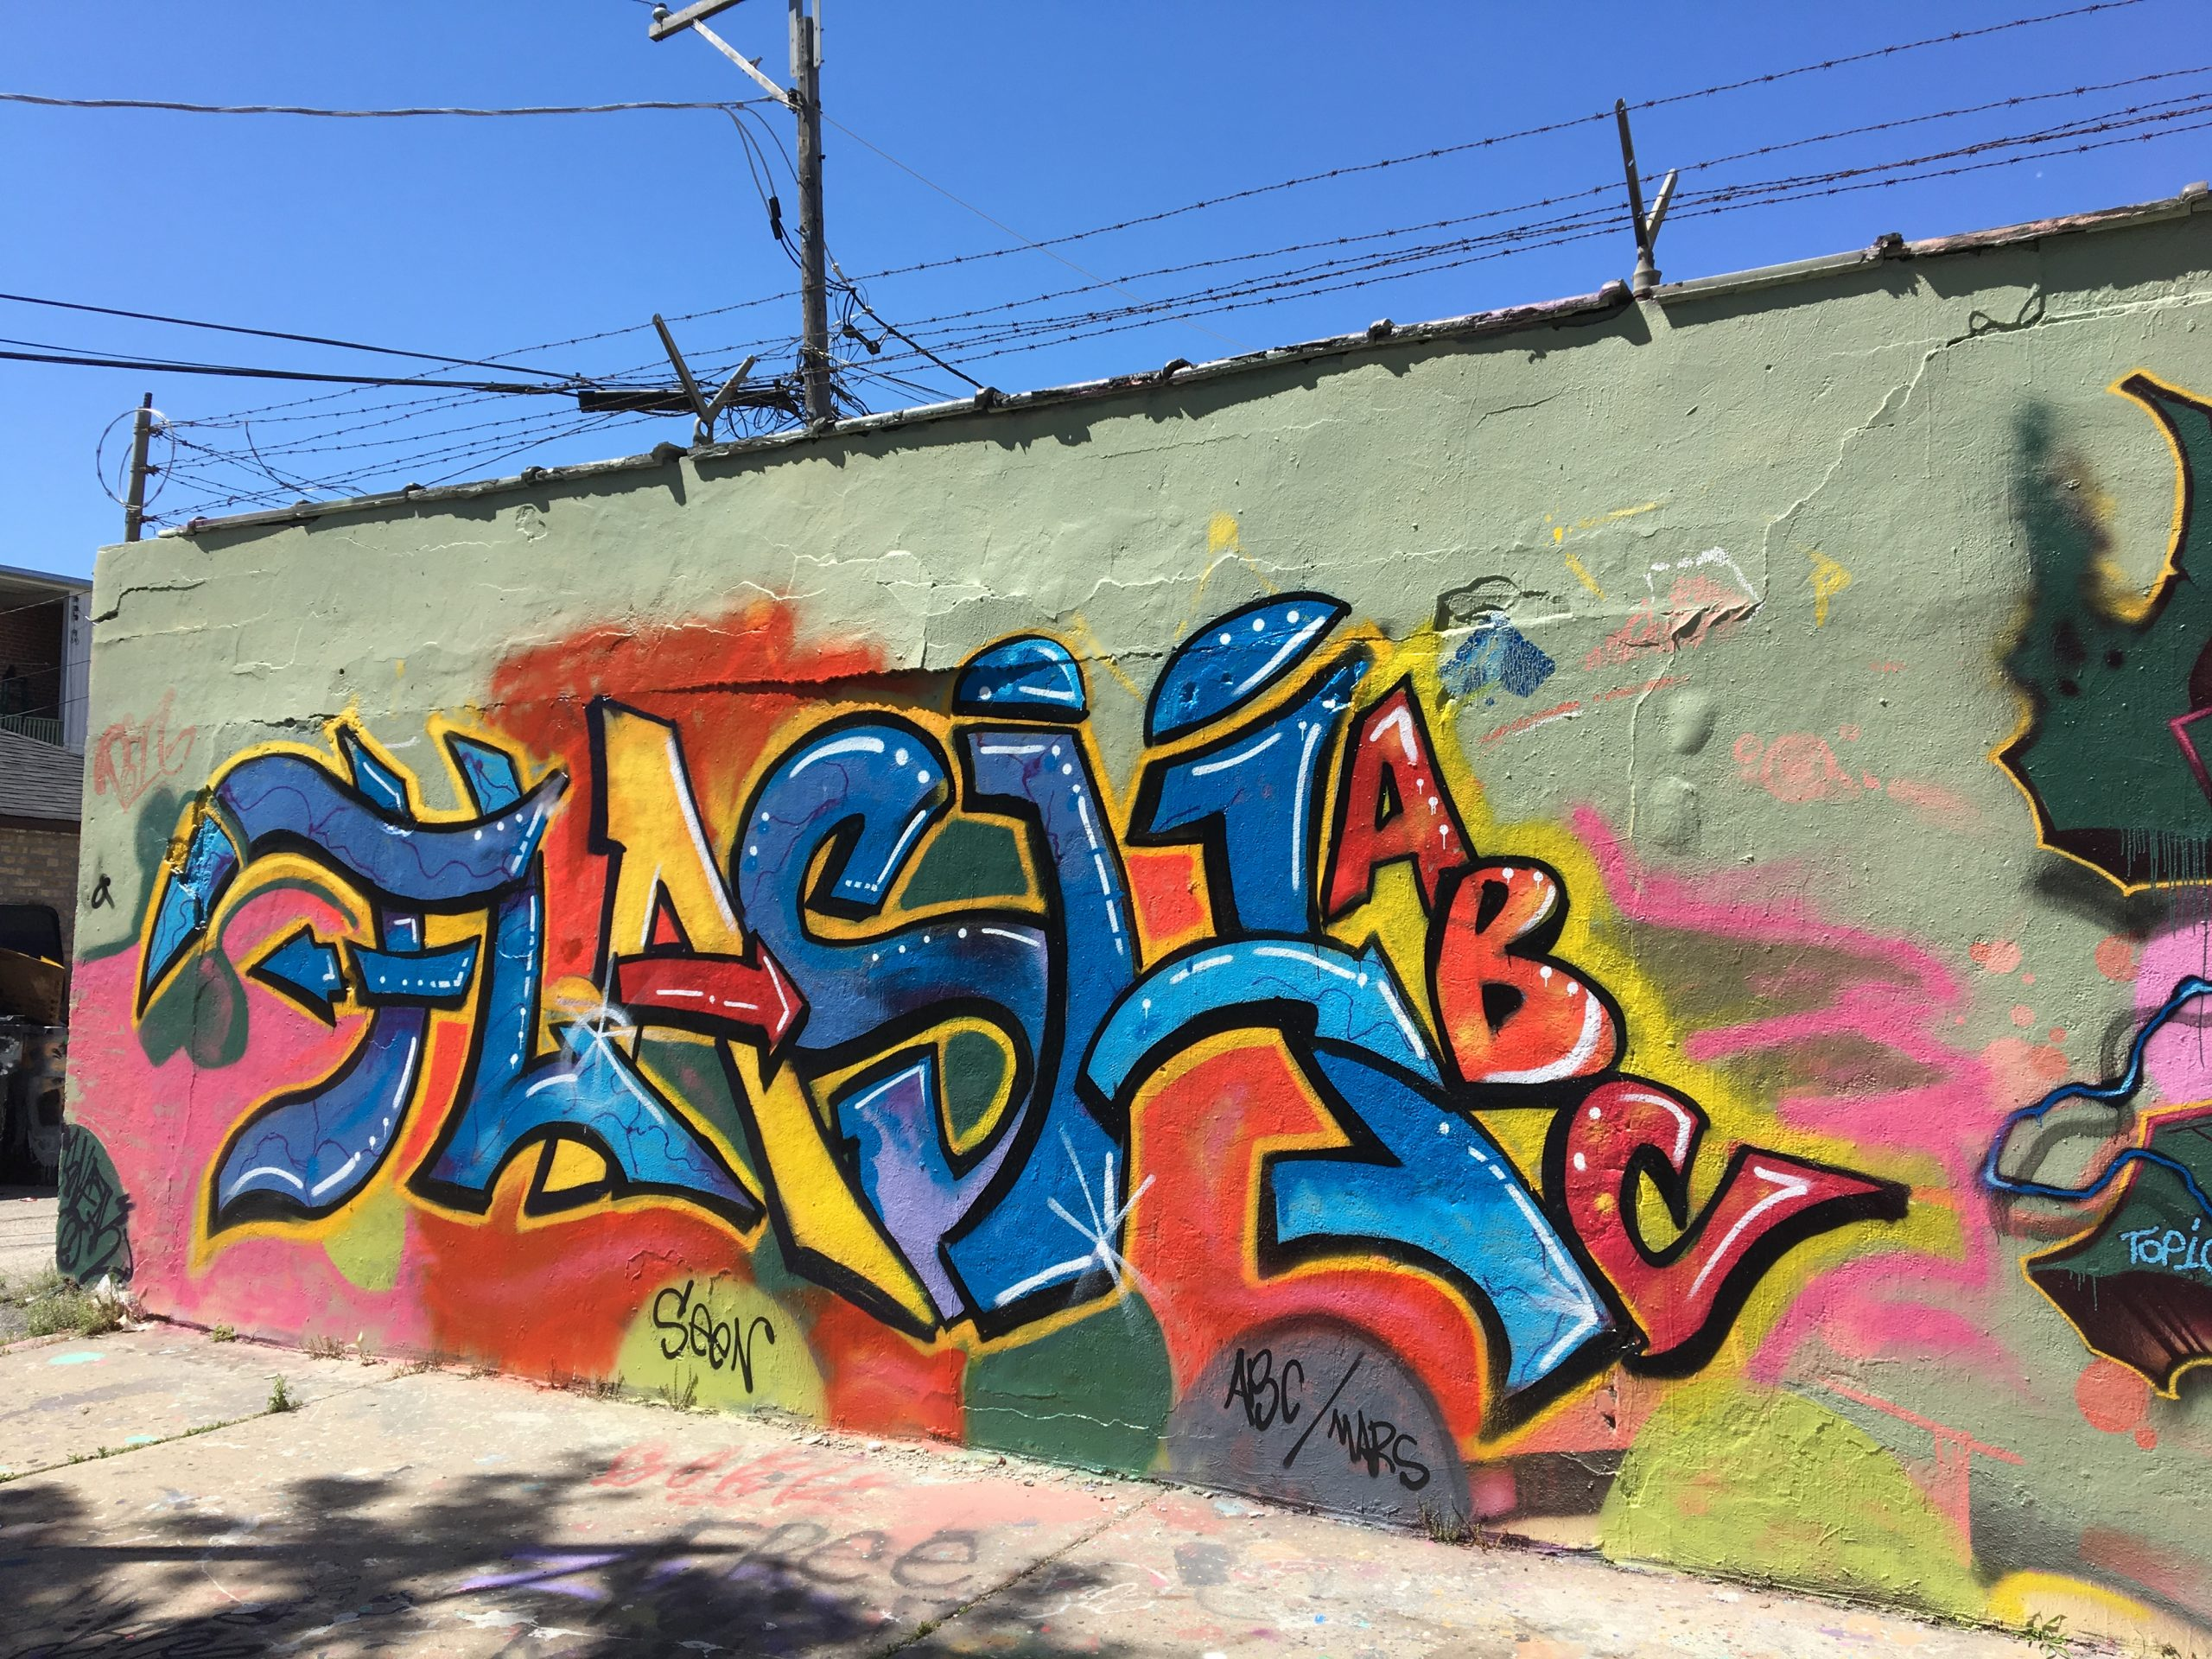 Flash's tag on Project Logan's Medill Avenue section